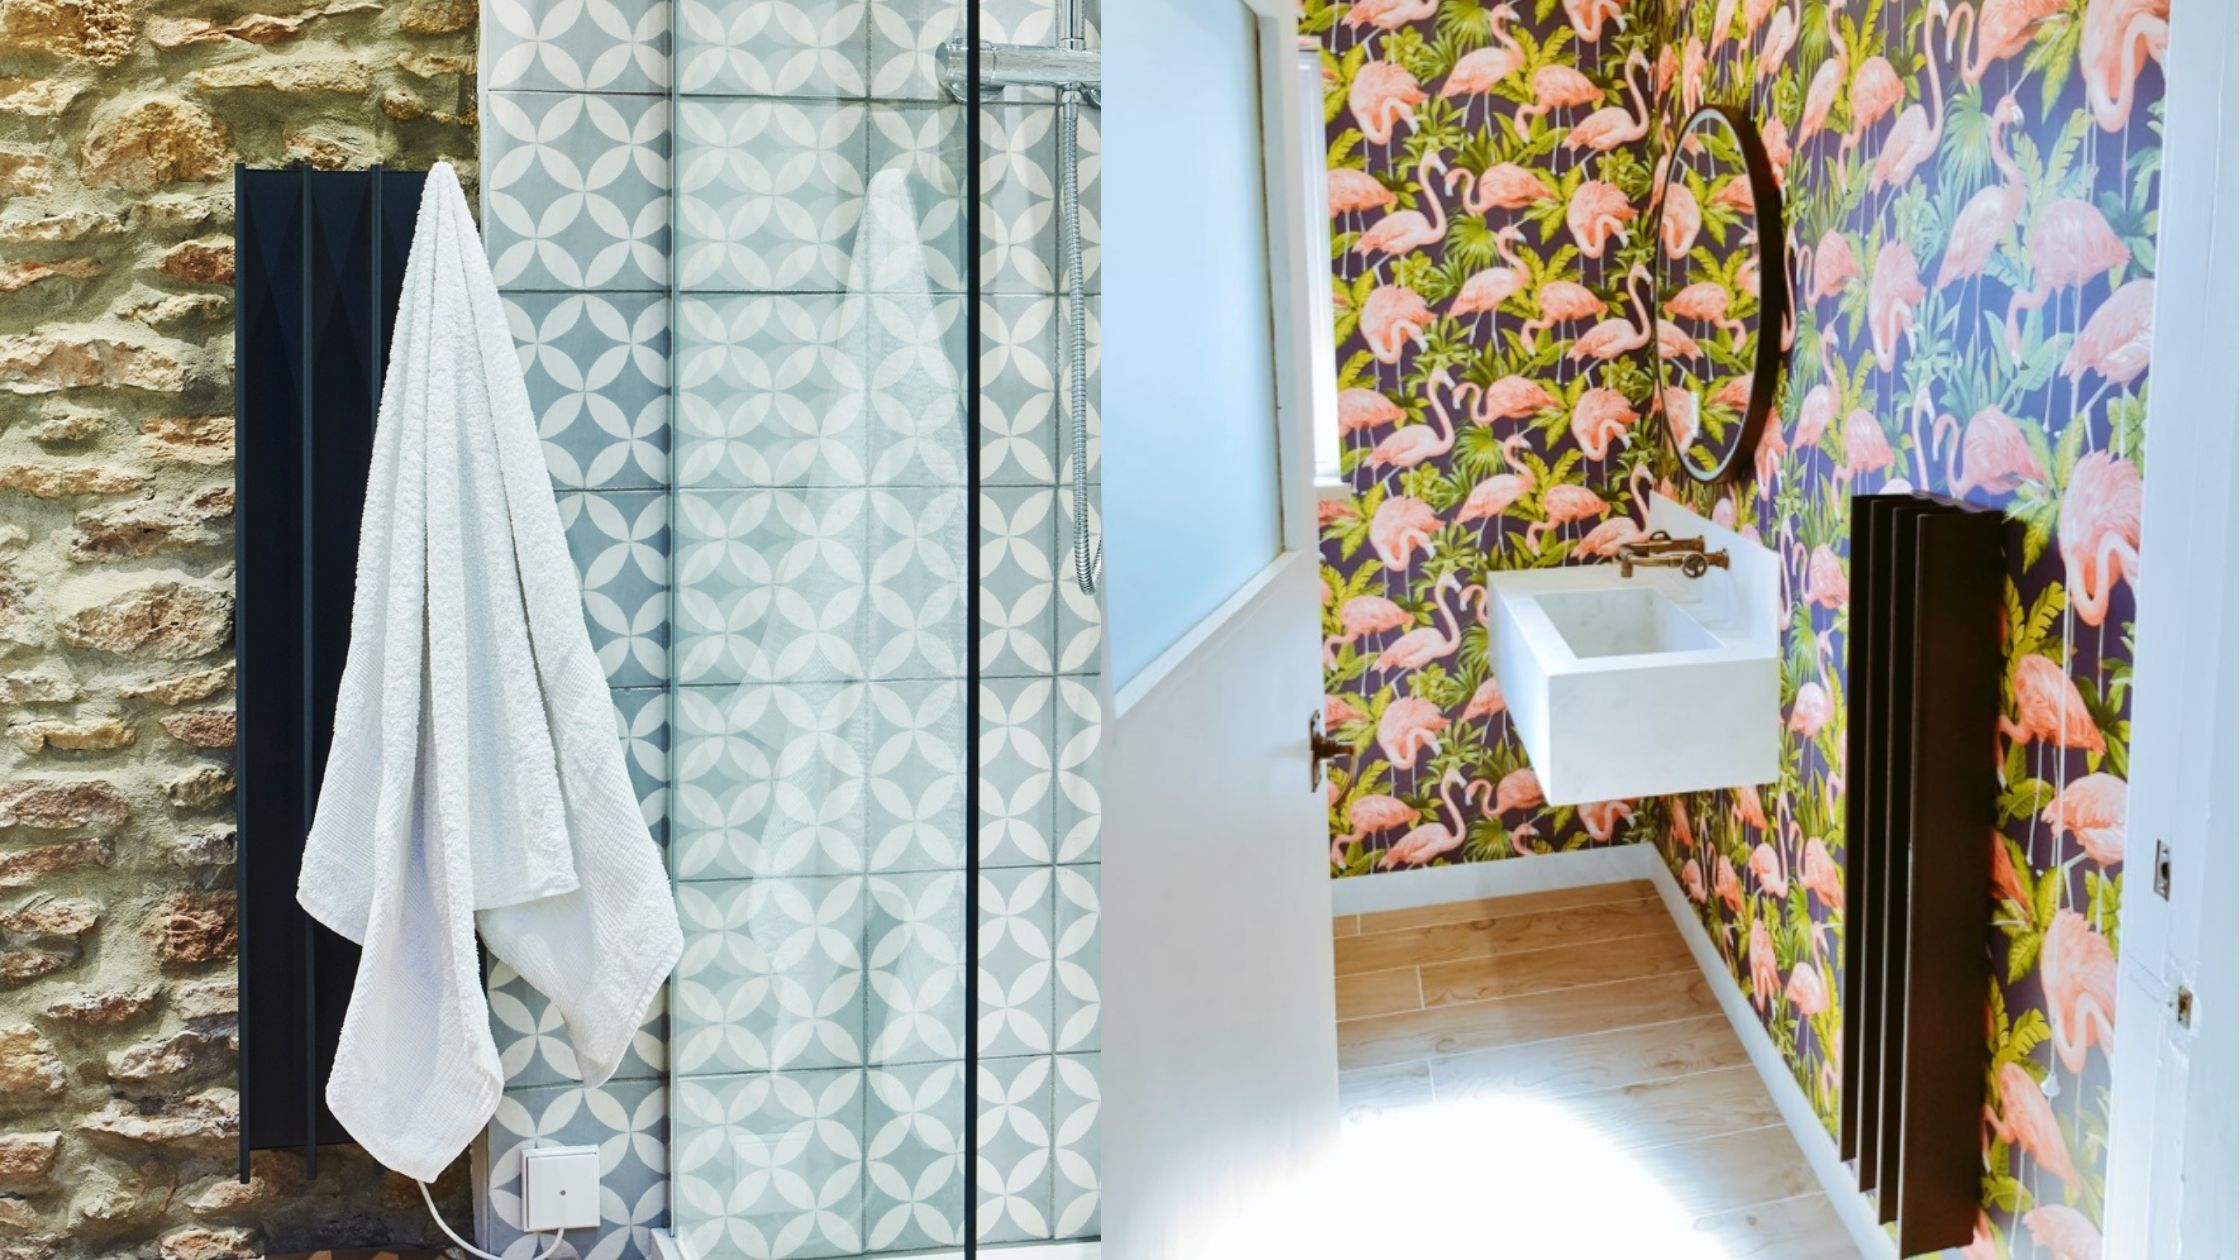 What size heated towel rail should I purchase?